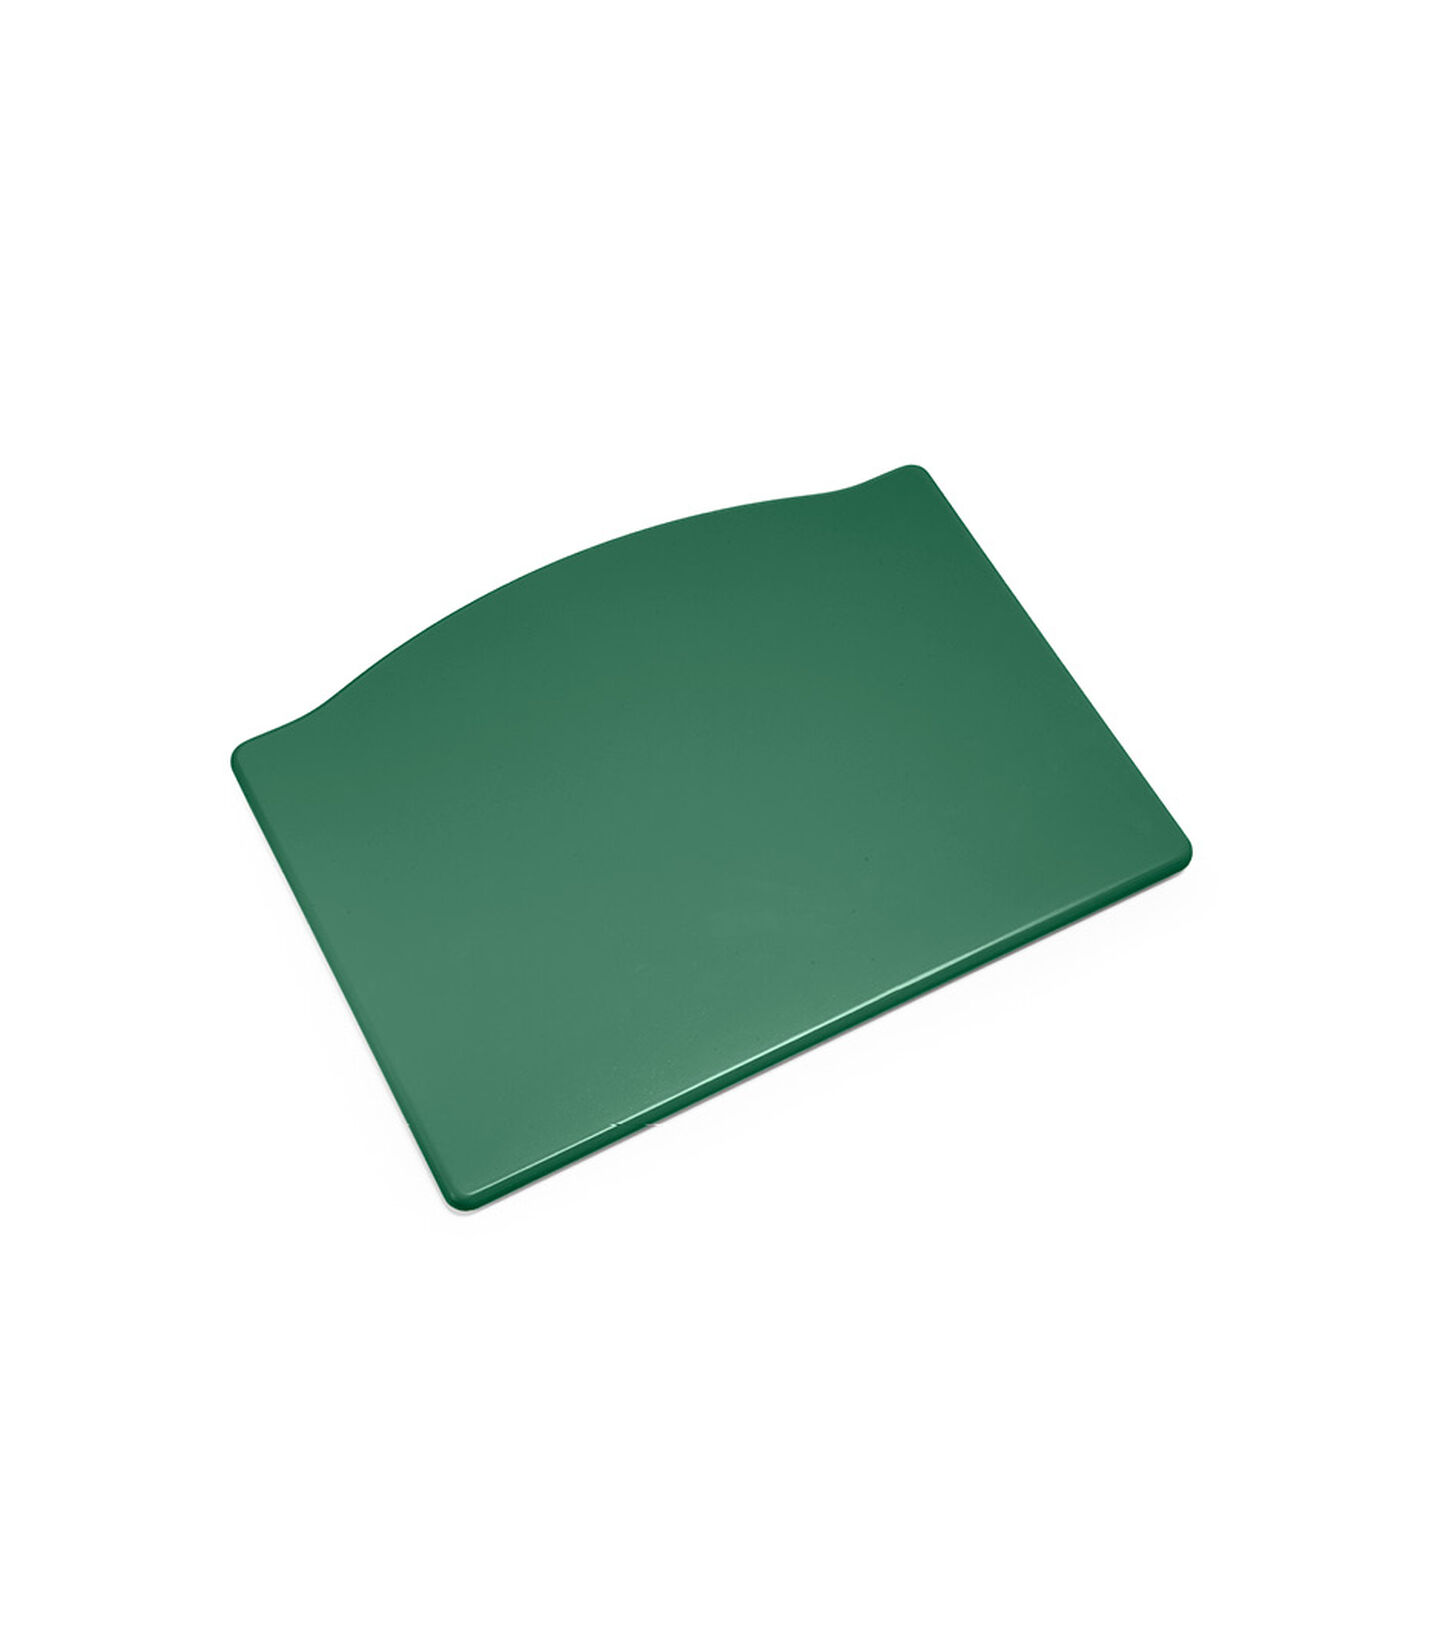 Tripp Trapp® Footplate Forest Green, Verde Foresta, mainview view 2